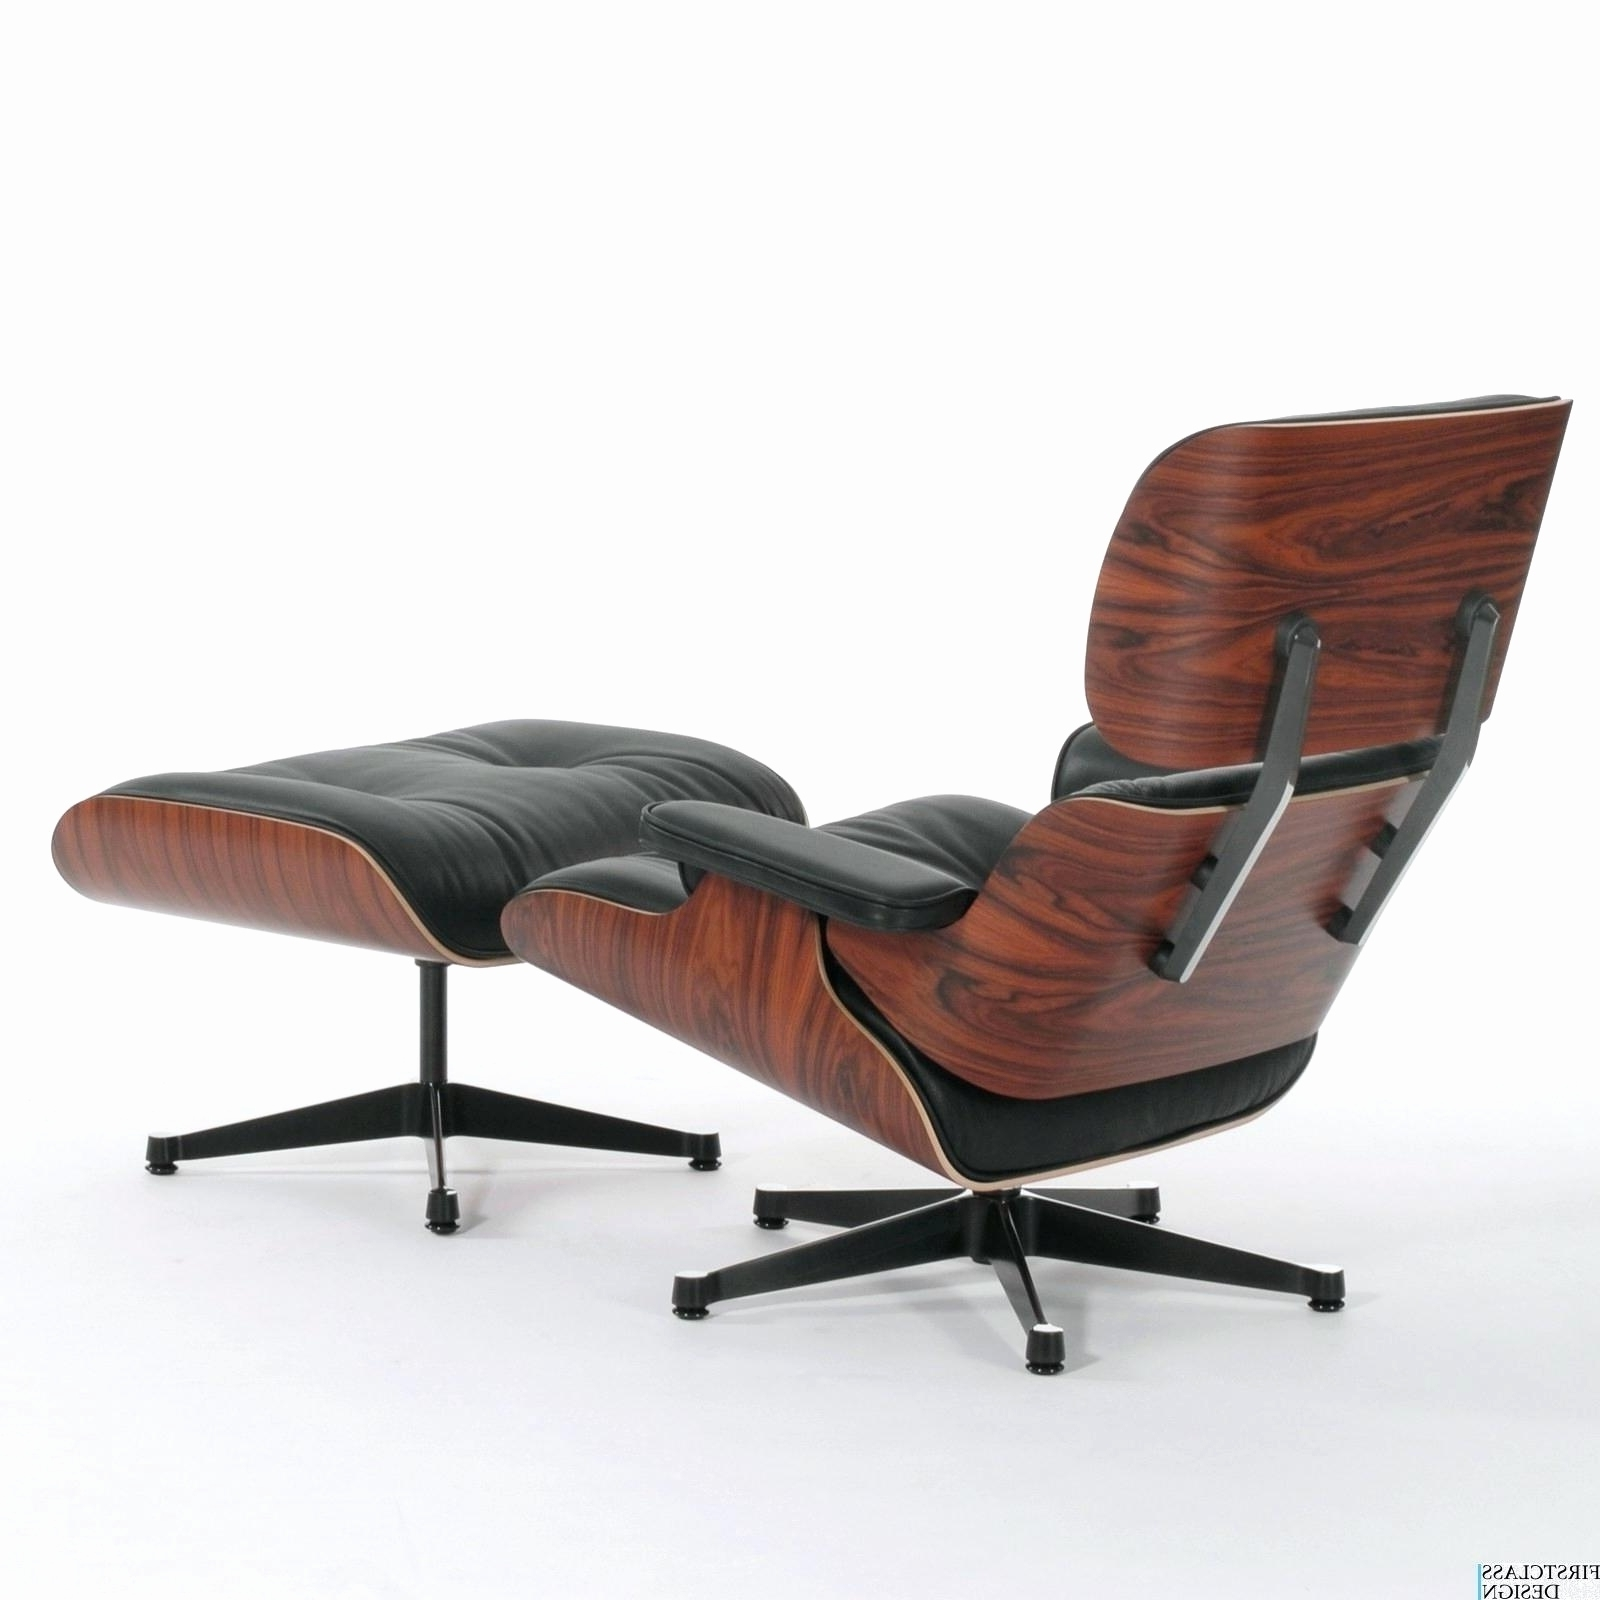 Bedfordob Within Well Known Mathis Brothers Chaise Lounge Chairs (View 3 of 15)